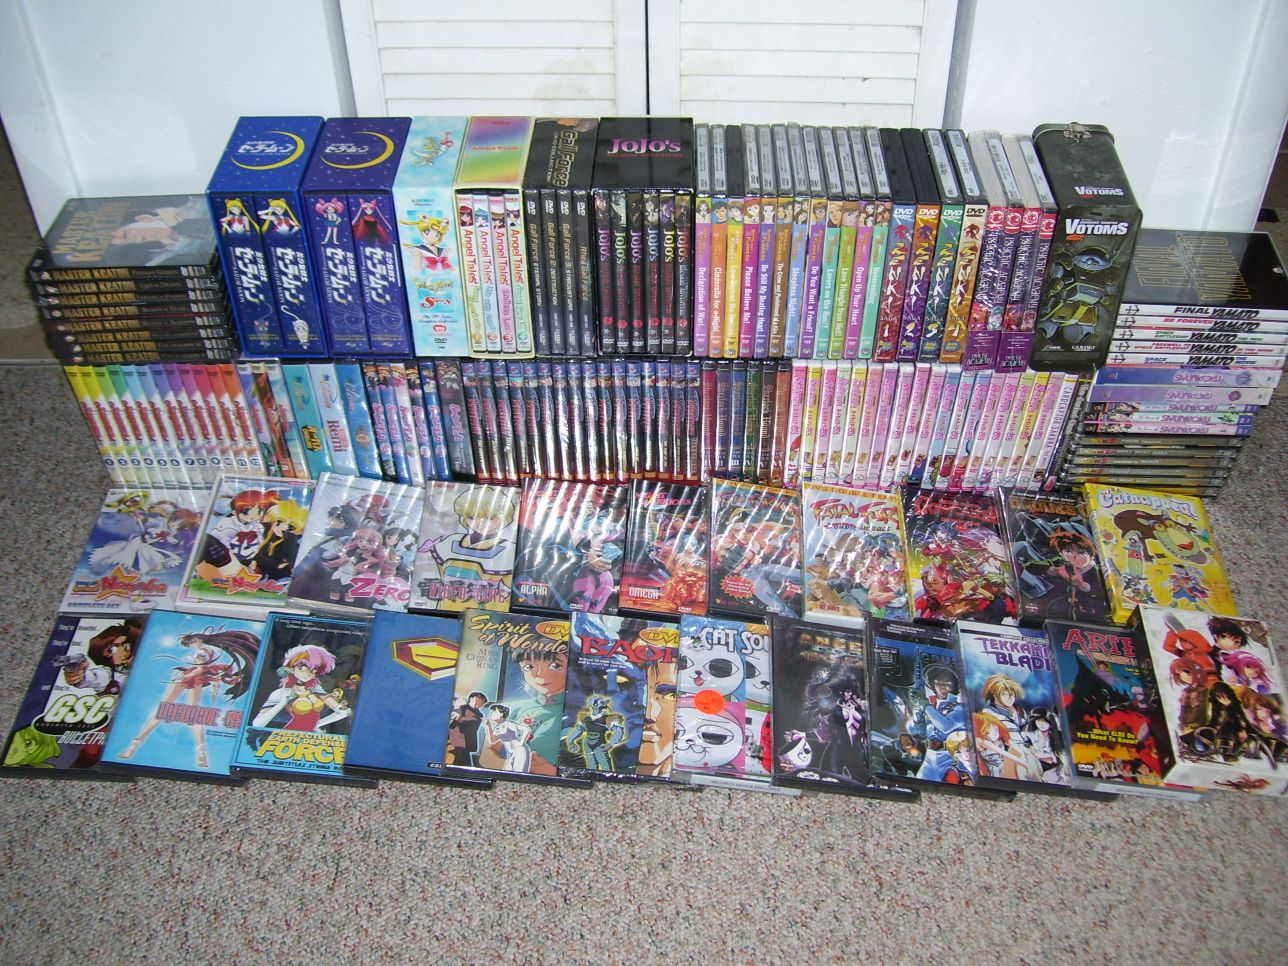 The increasing scarcity of certain domestic anime dvds has surfaced as a topic of conversation in the american otaku community lately